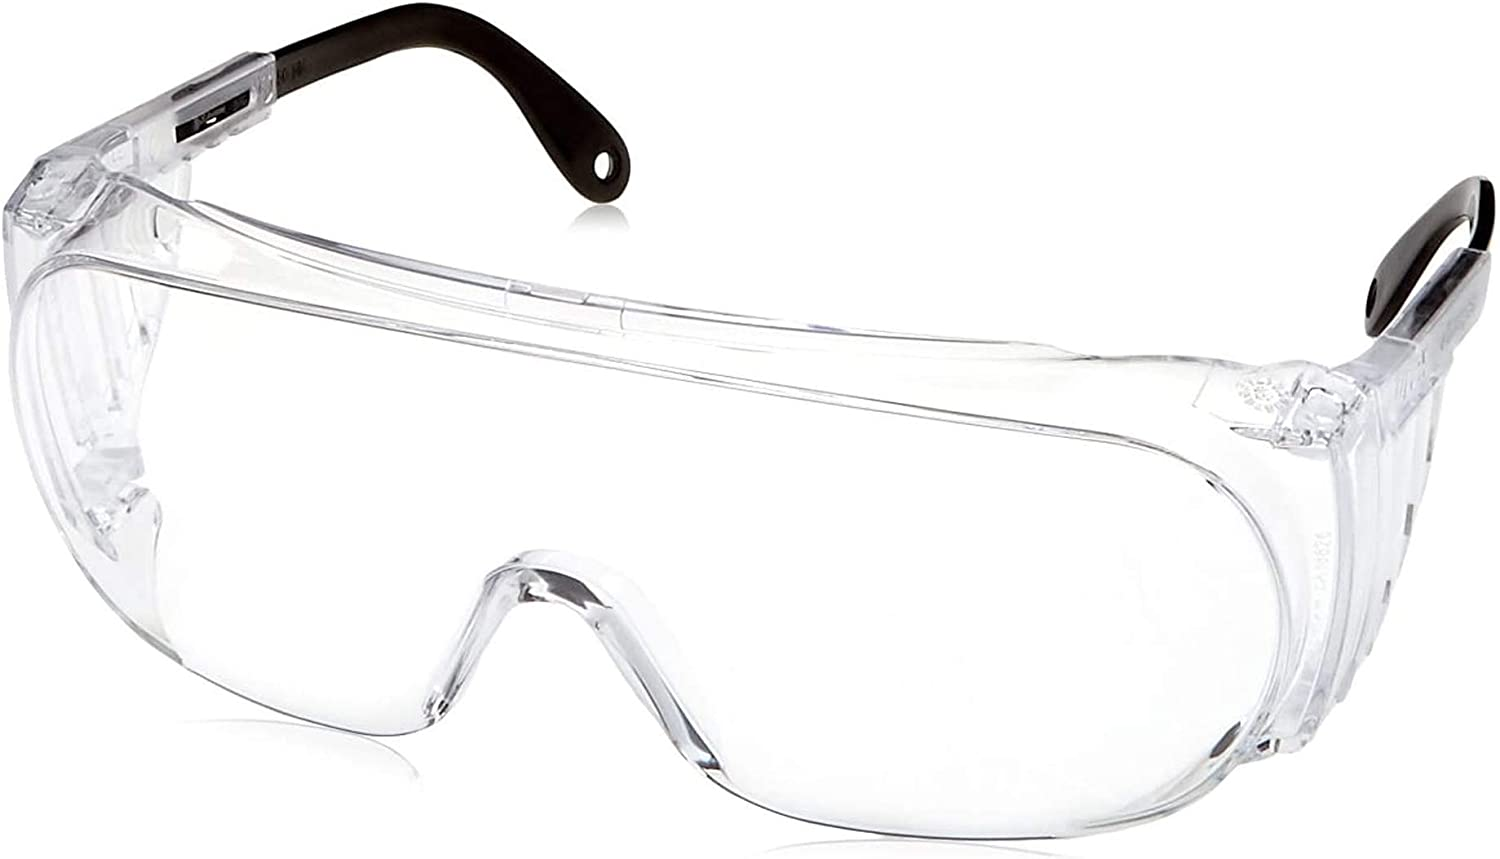 Uvex Ultra-Spec 2000 Visitor Specs Safety Glasses with Clear Ultra-Dura Anti-Scratch Lens (S0300)